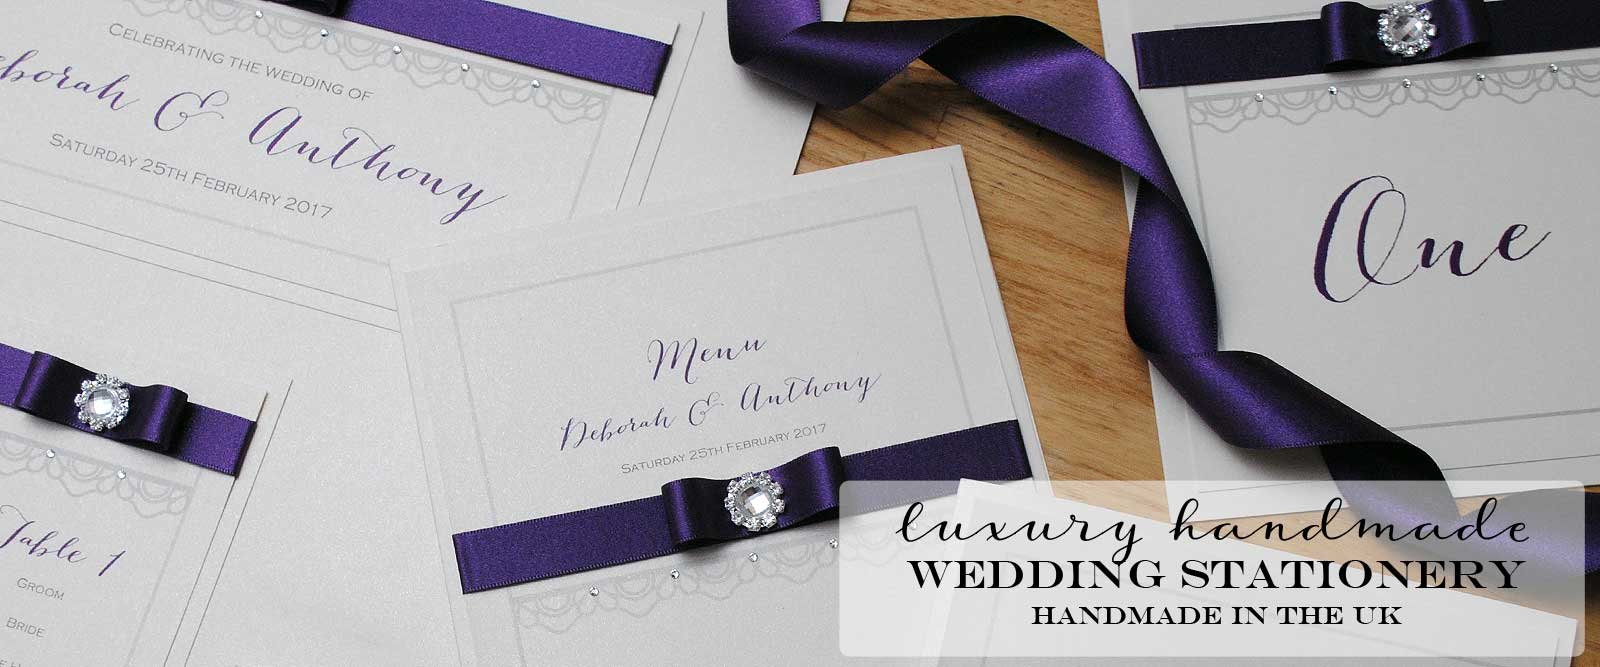 Wedding Invitations Handmade: Luxury Handmade Wedding Invitations & Wedding Stationery